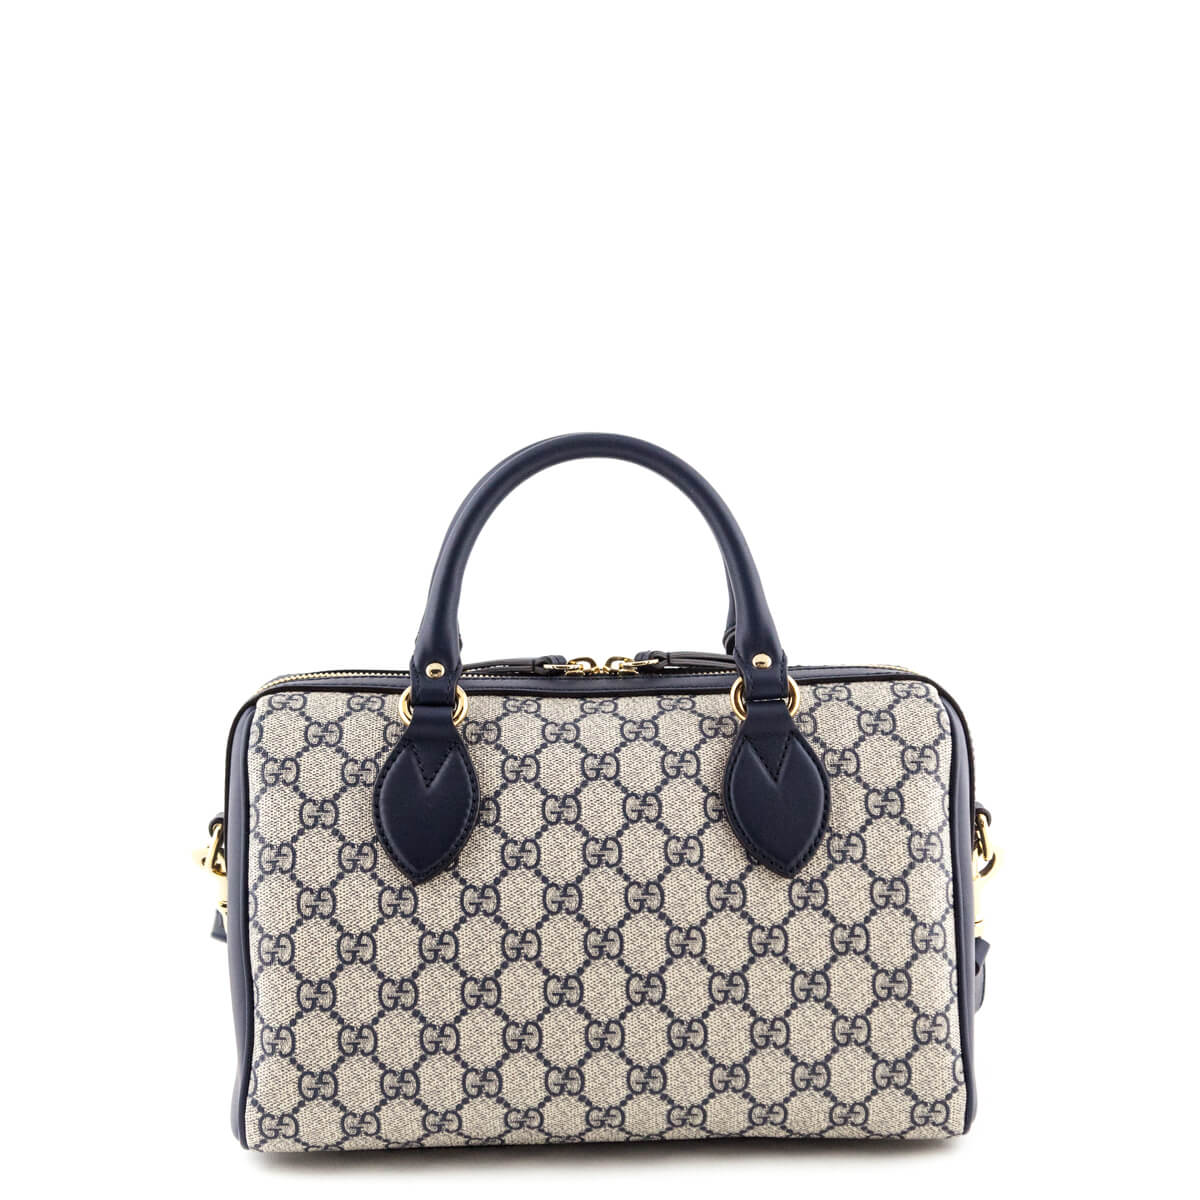 3deda12c18c1a7 ... Gucci Navy GG Supreme Small Top Handle Bag - LOVE that BAG - Preowned  Authentic Designer ...